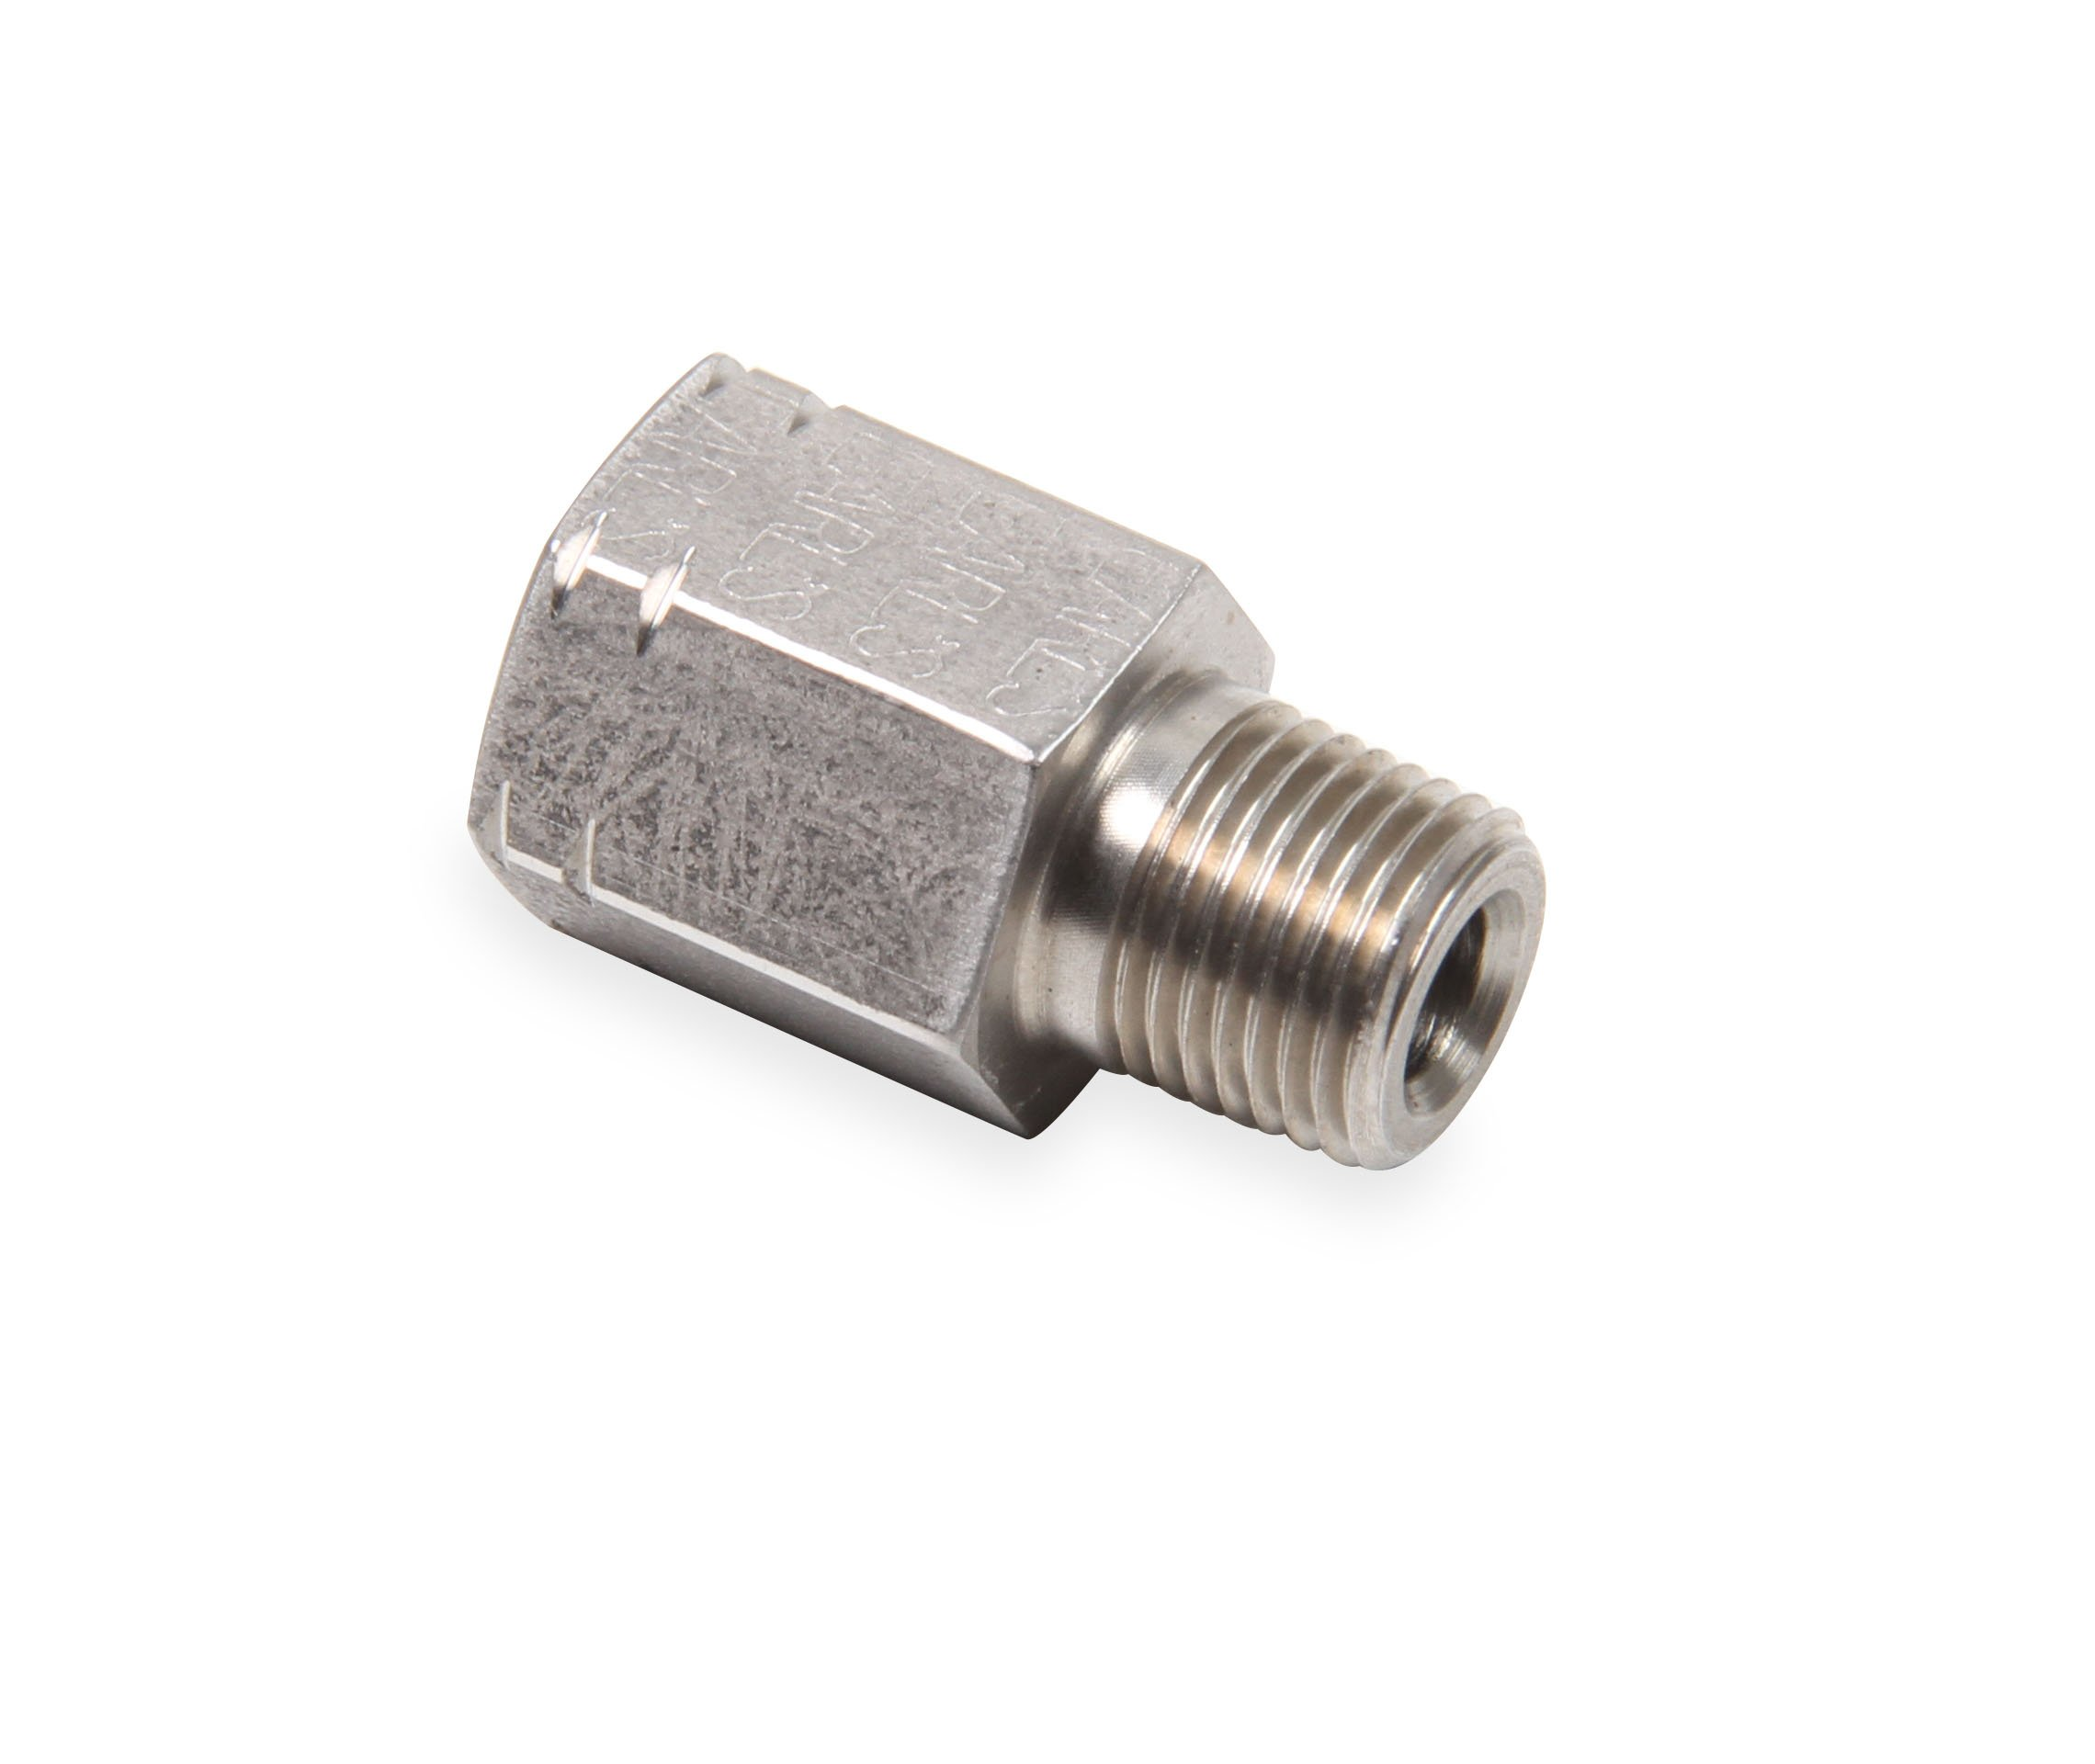 1-8 NPT Female to 1-8 NPT Male Extension Finish:Nickel Air Fittin